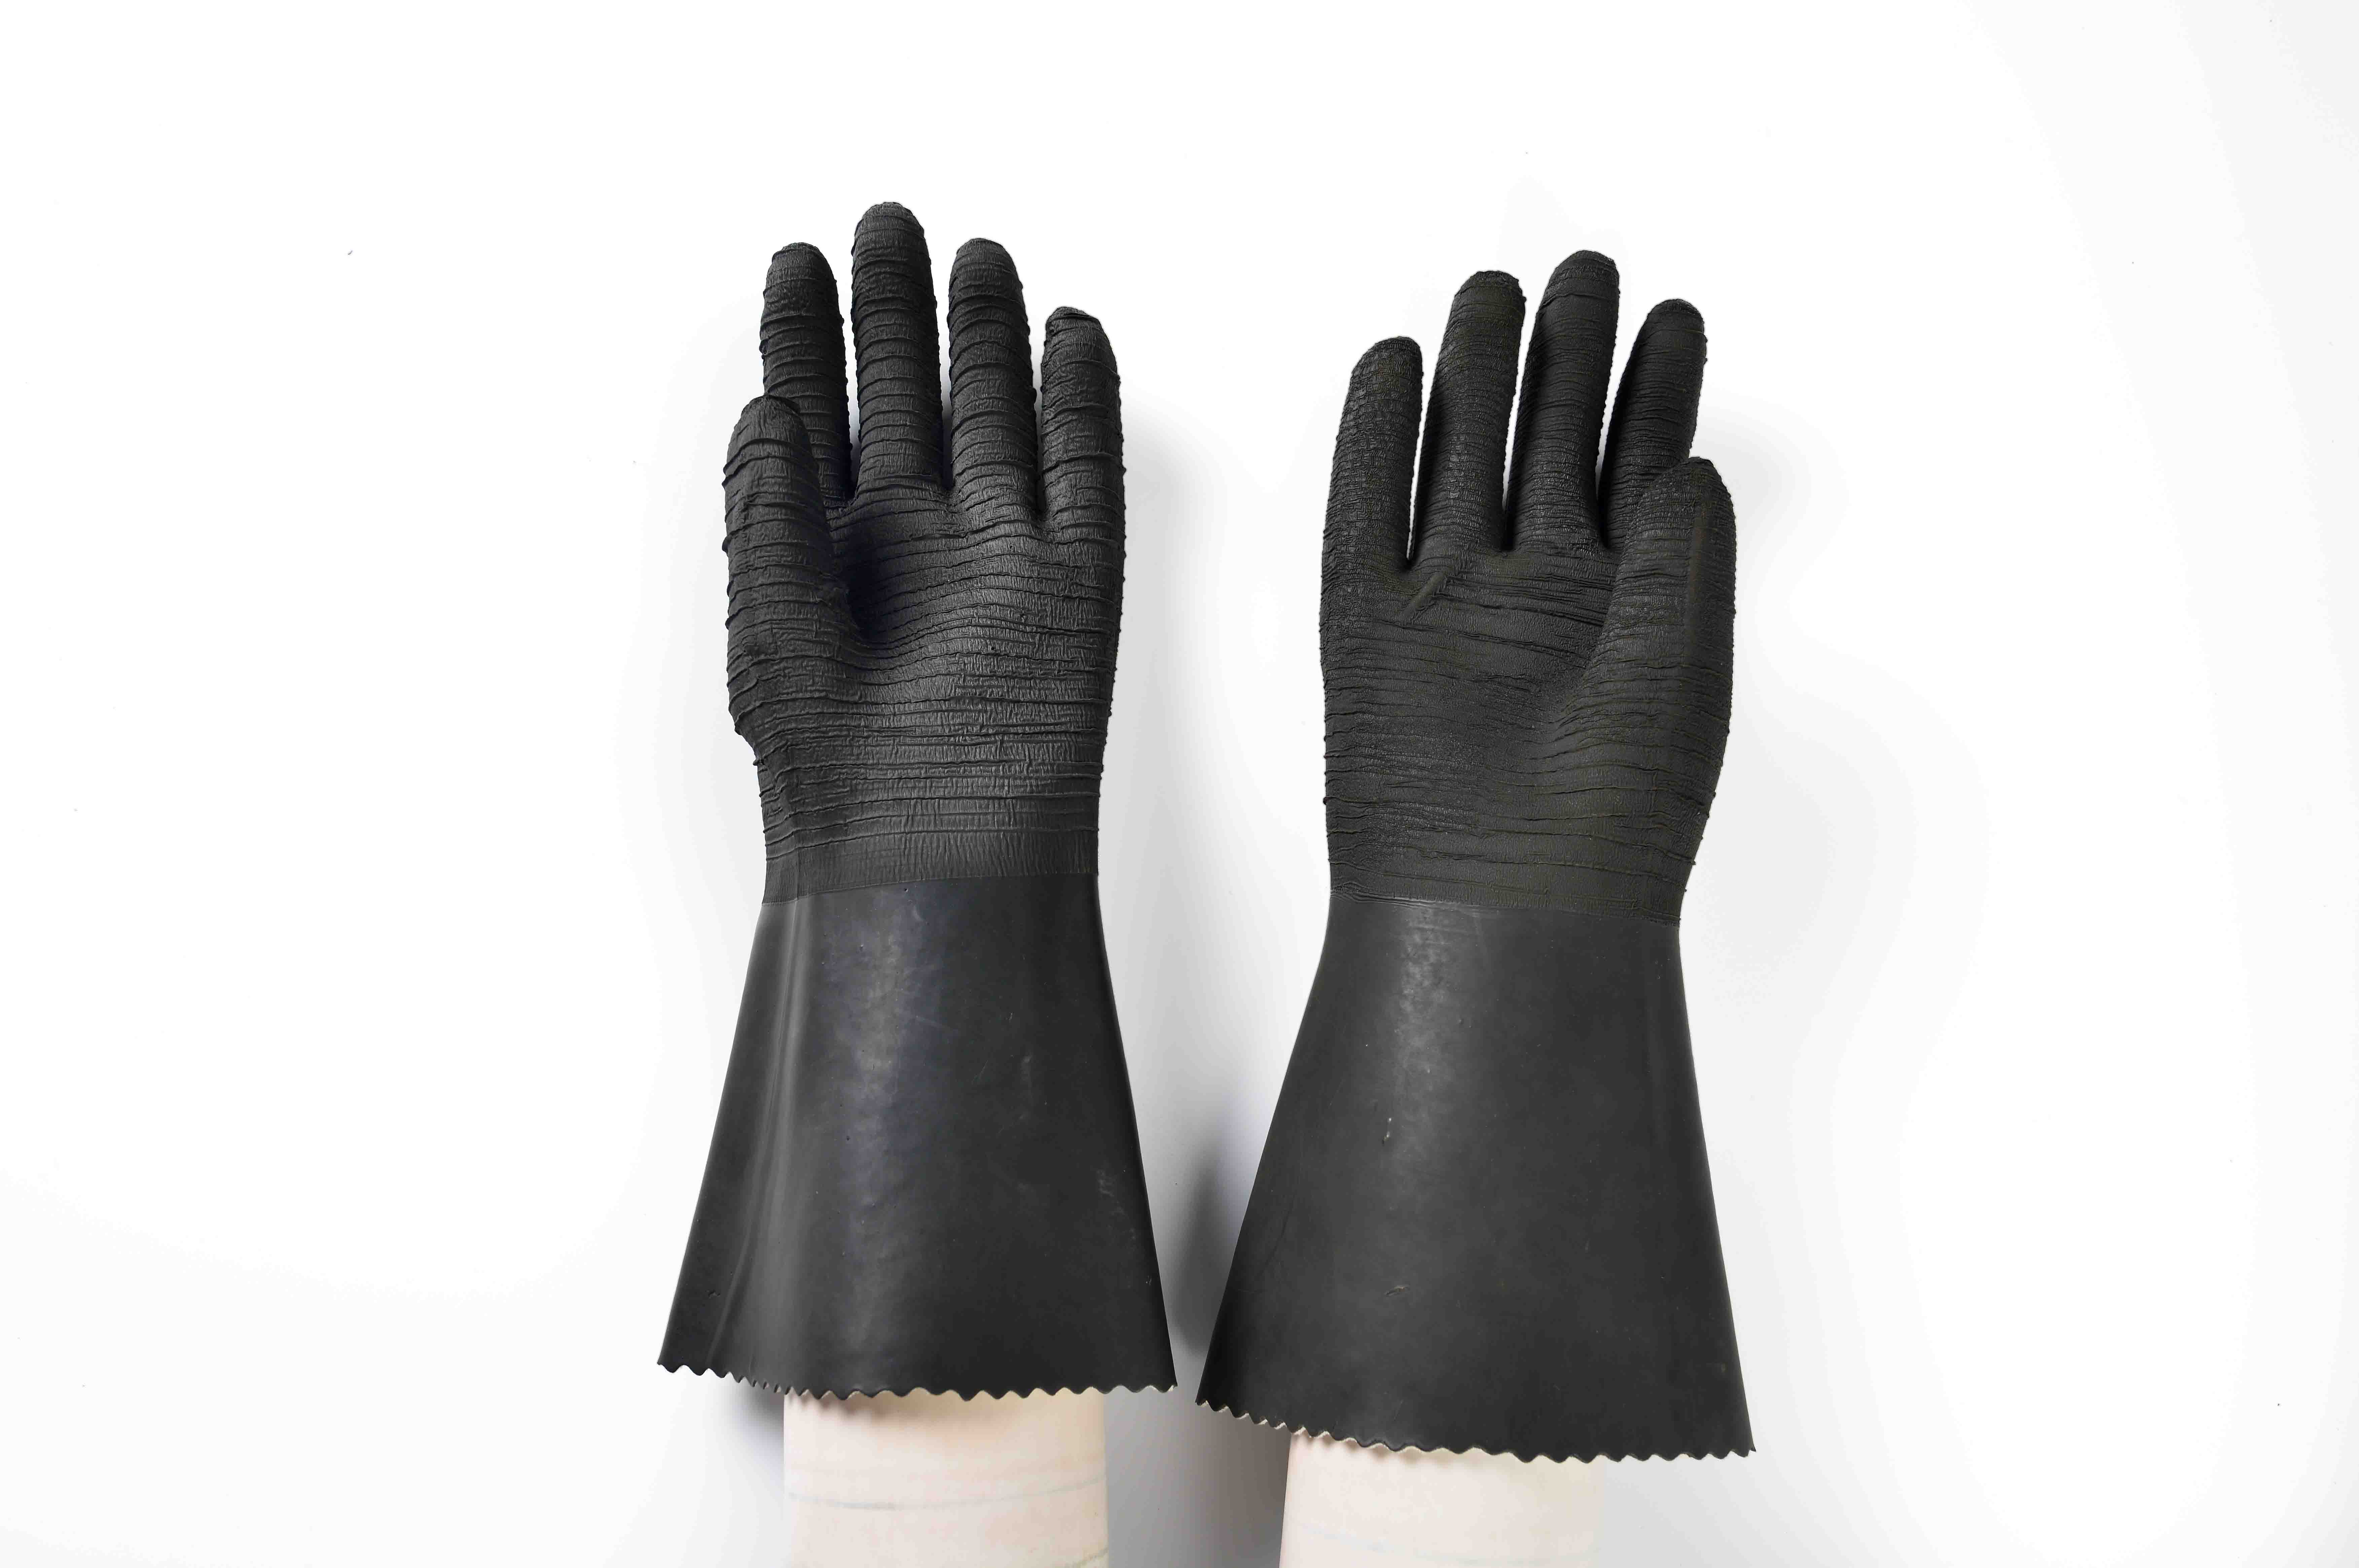 OEM/ODM Supplier for 14″ rubber glove with cotton linning-rough finish UK Supplier